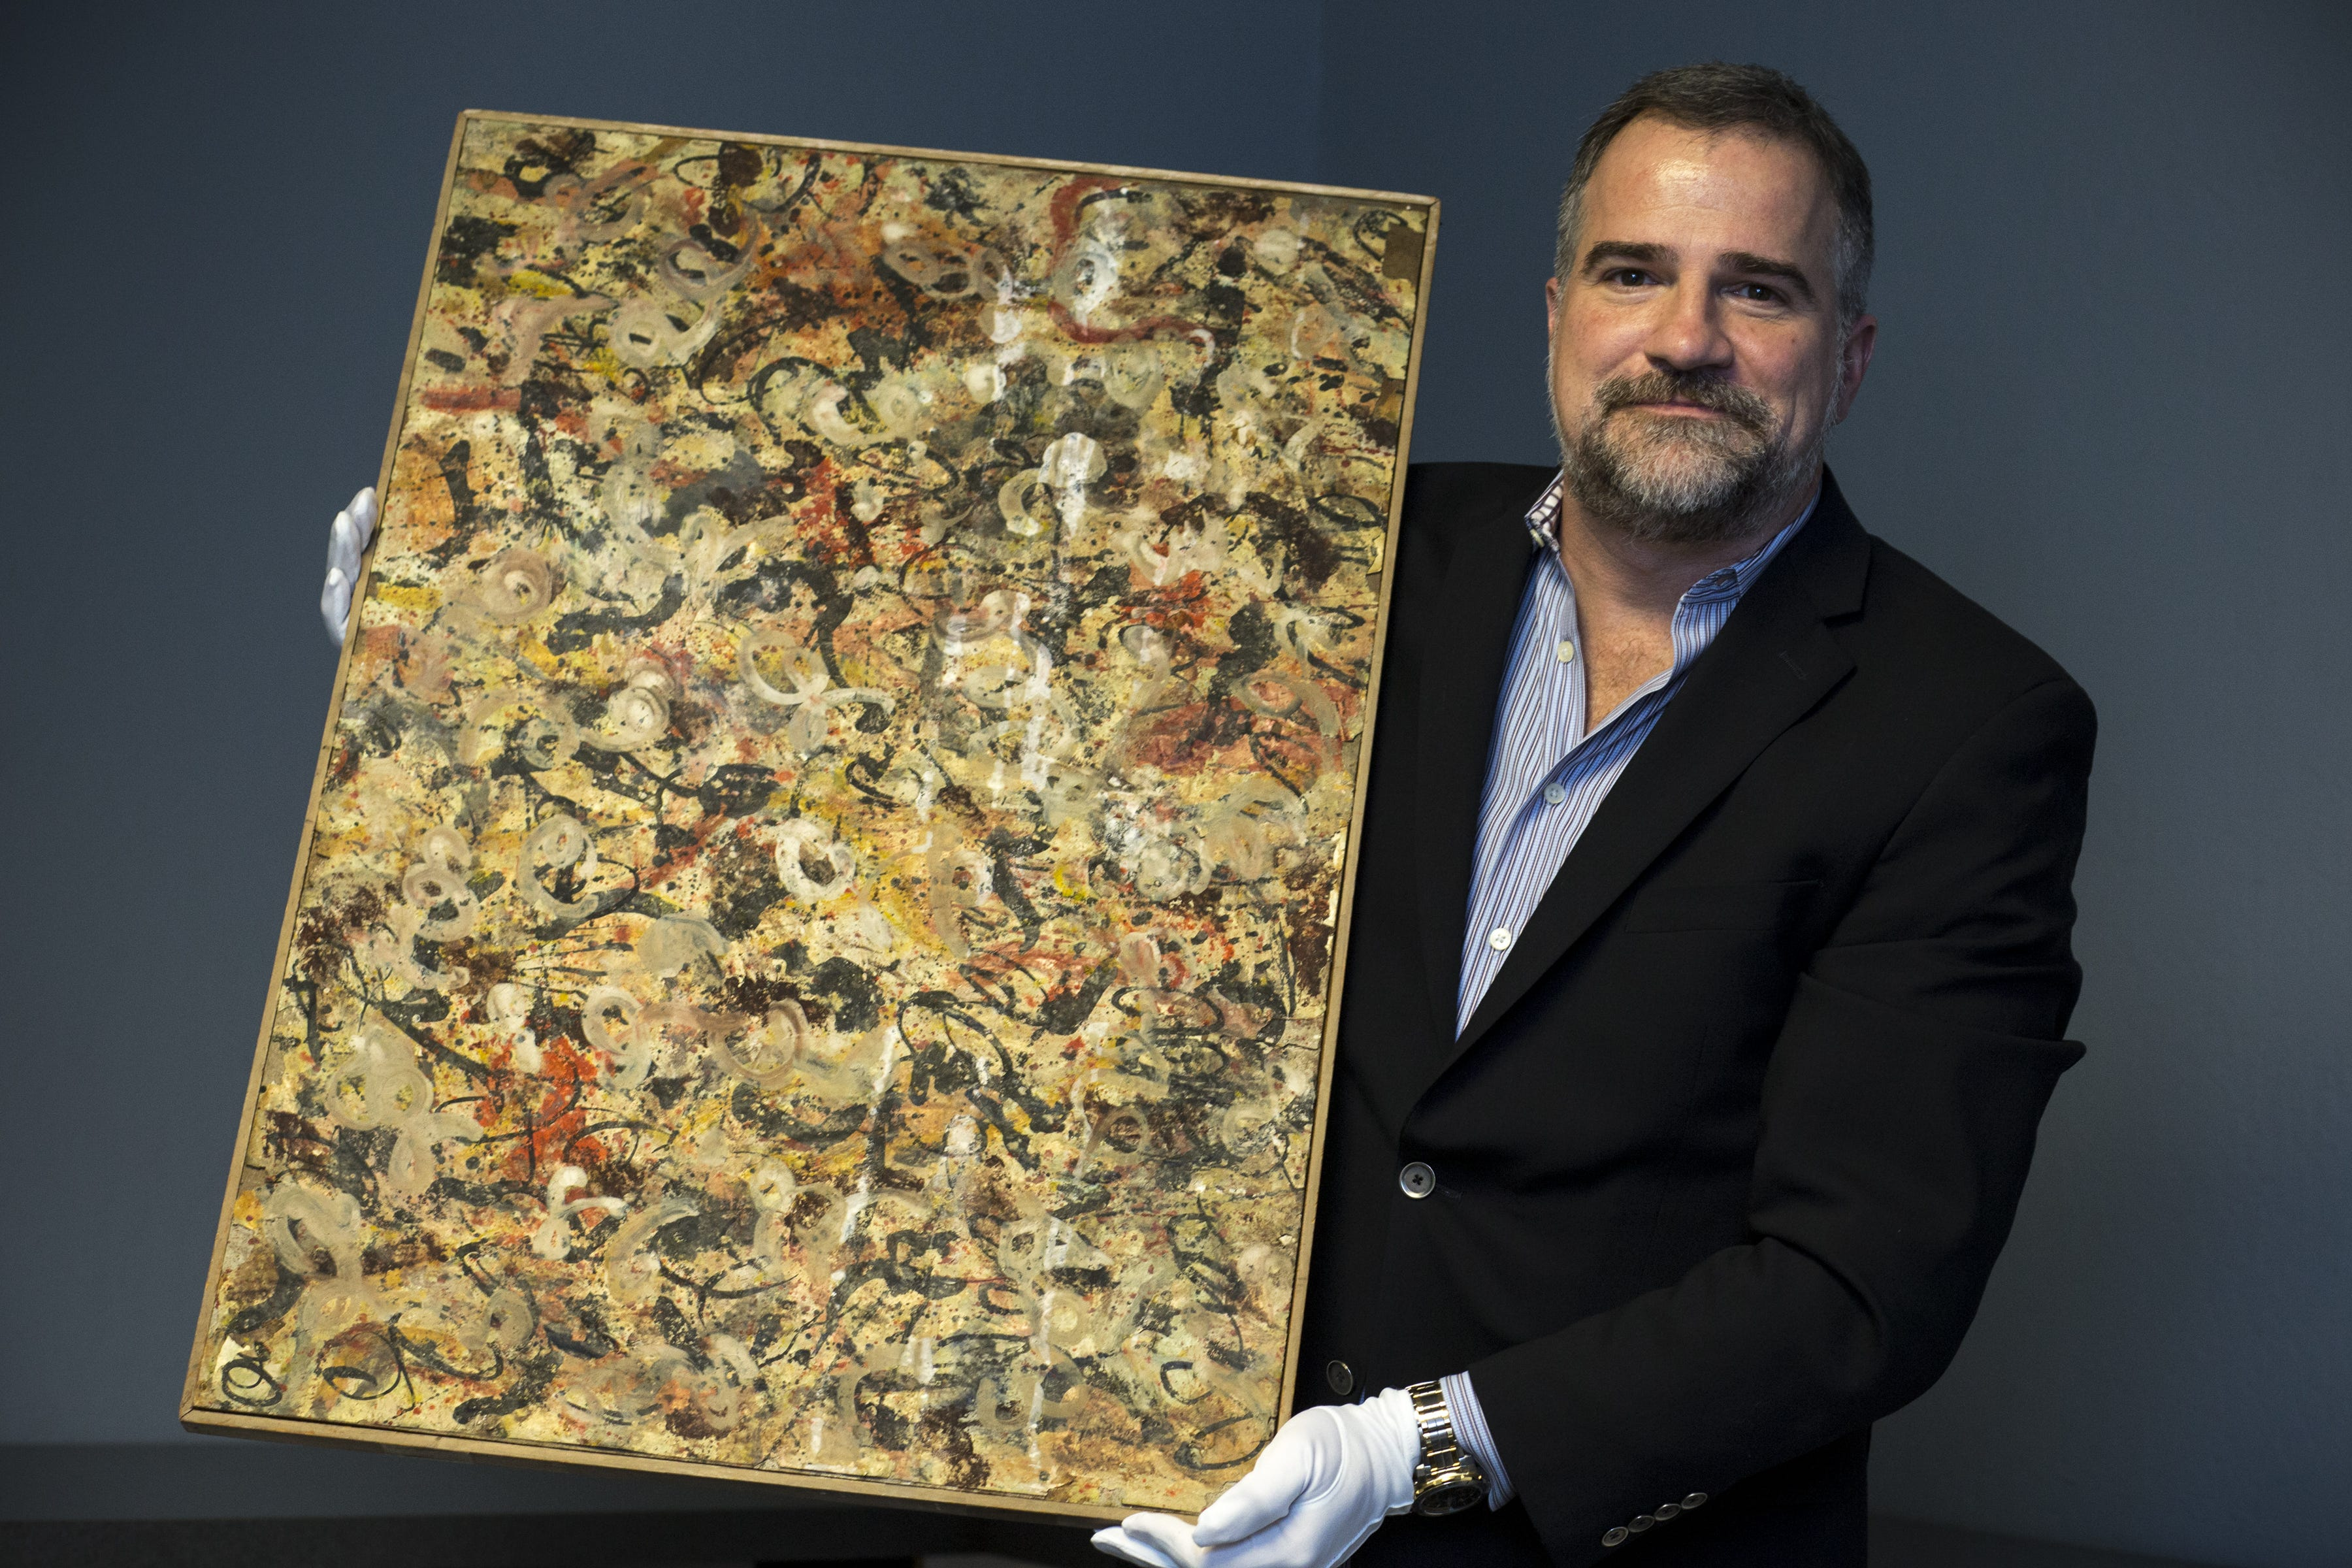 Painting pulled from Arizona attic may be a Jackson Pollock worth $10 million